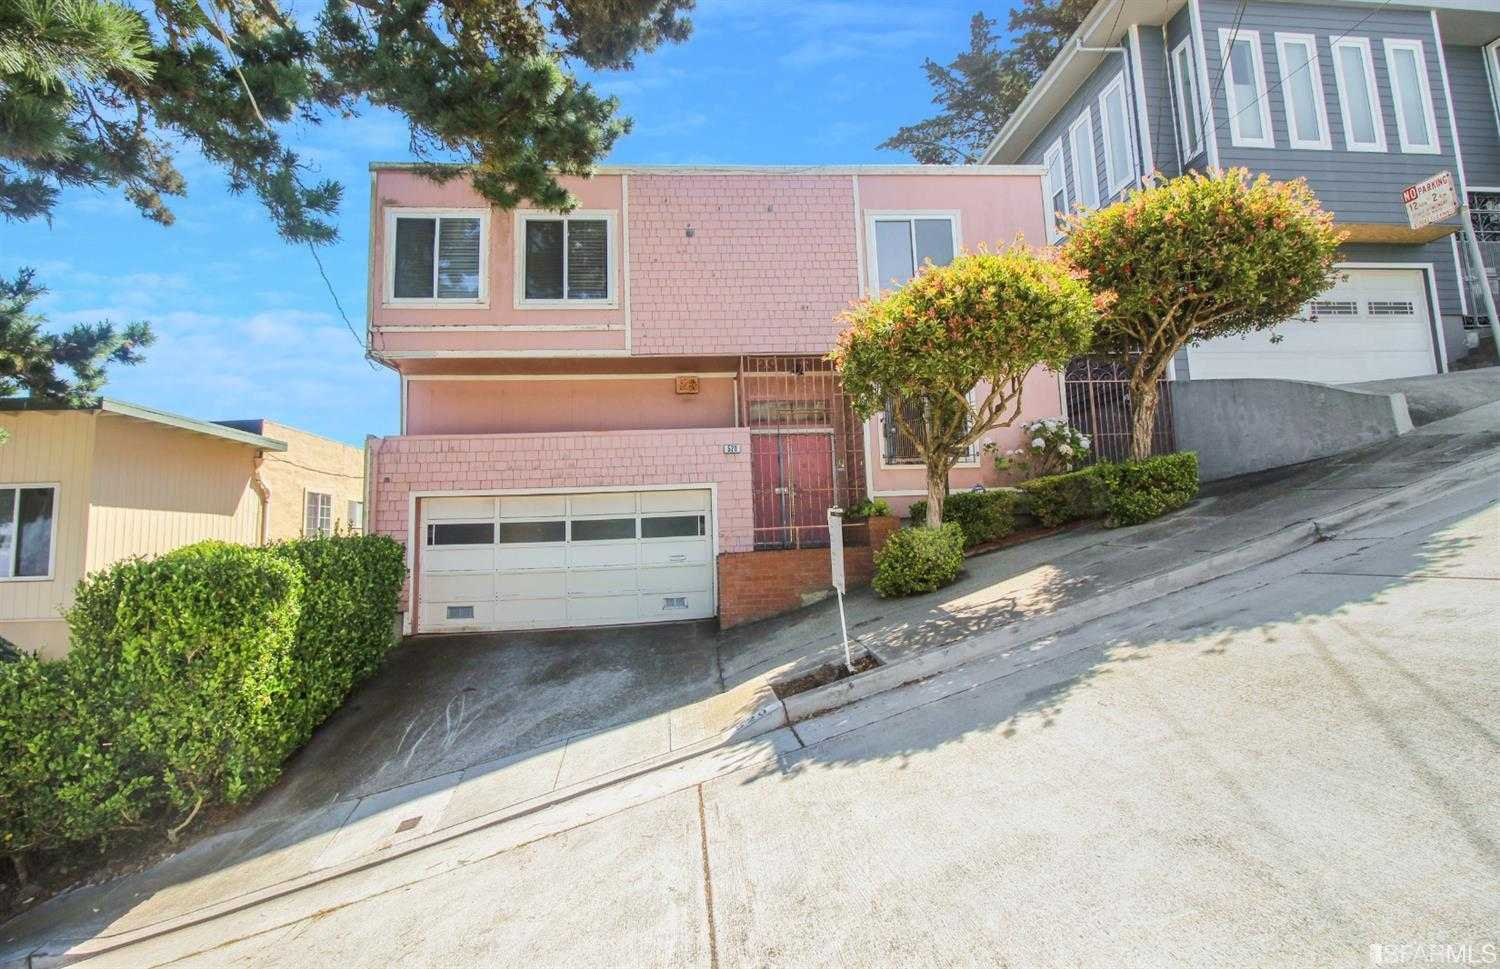 520 Orizaba Ave San Francisco, CA 94132